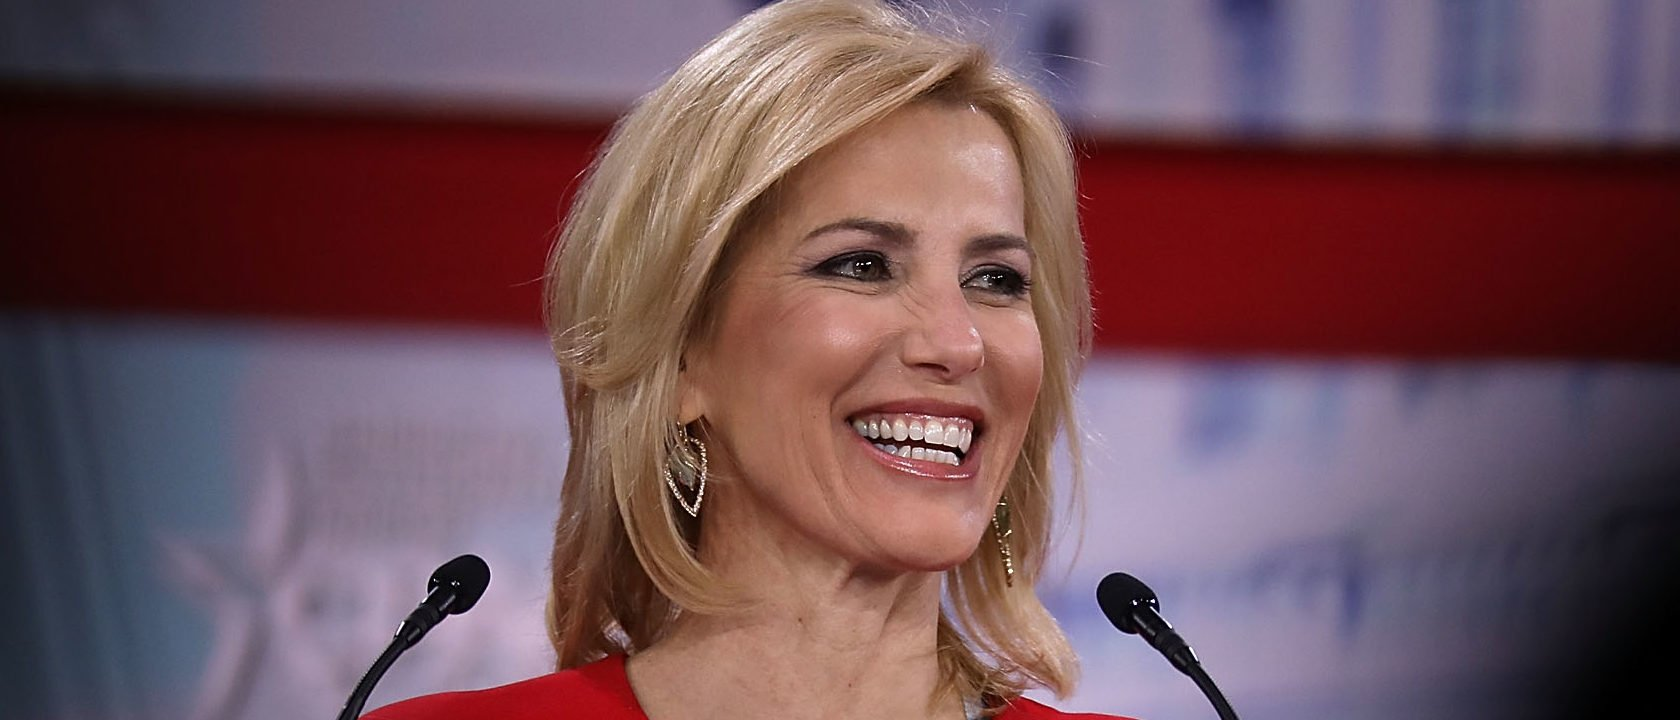 NATIONAL HARBOR, MD - FEBRUARY 23: Fox News Channel host Laura Ingraham addresses the Conservative Political Action Conference at the Gaylord National Resort and Convention Center February 23, 2018 in National Harbor, Maryland. U.S. President Donald Trump is scheduled to address CPAC, the largest annual gathering of conservatives in the nation. (Photo by Chip Somodevilla/Getty Images)